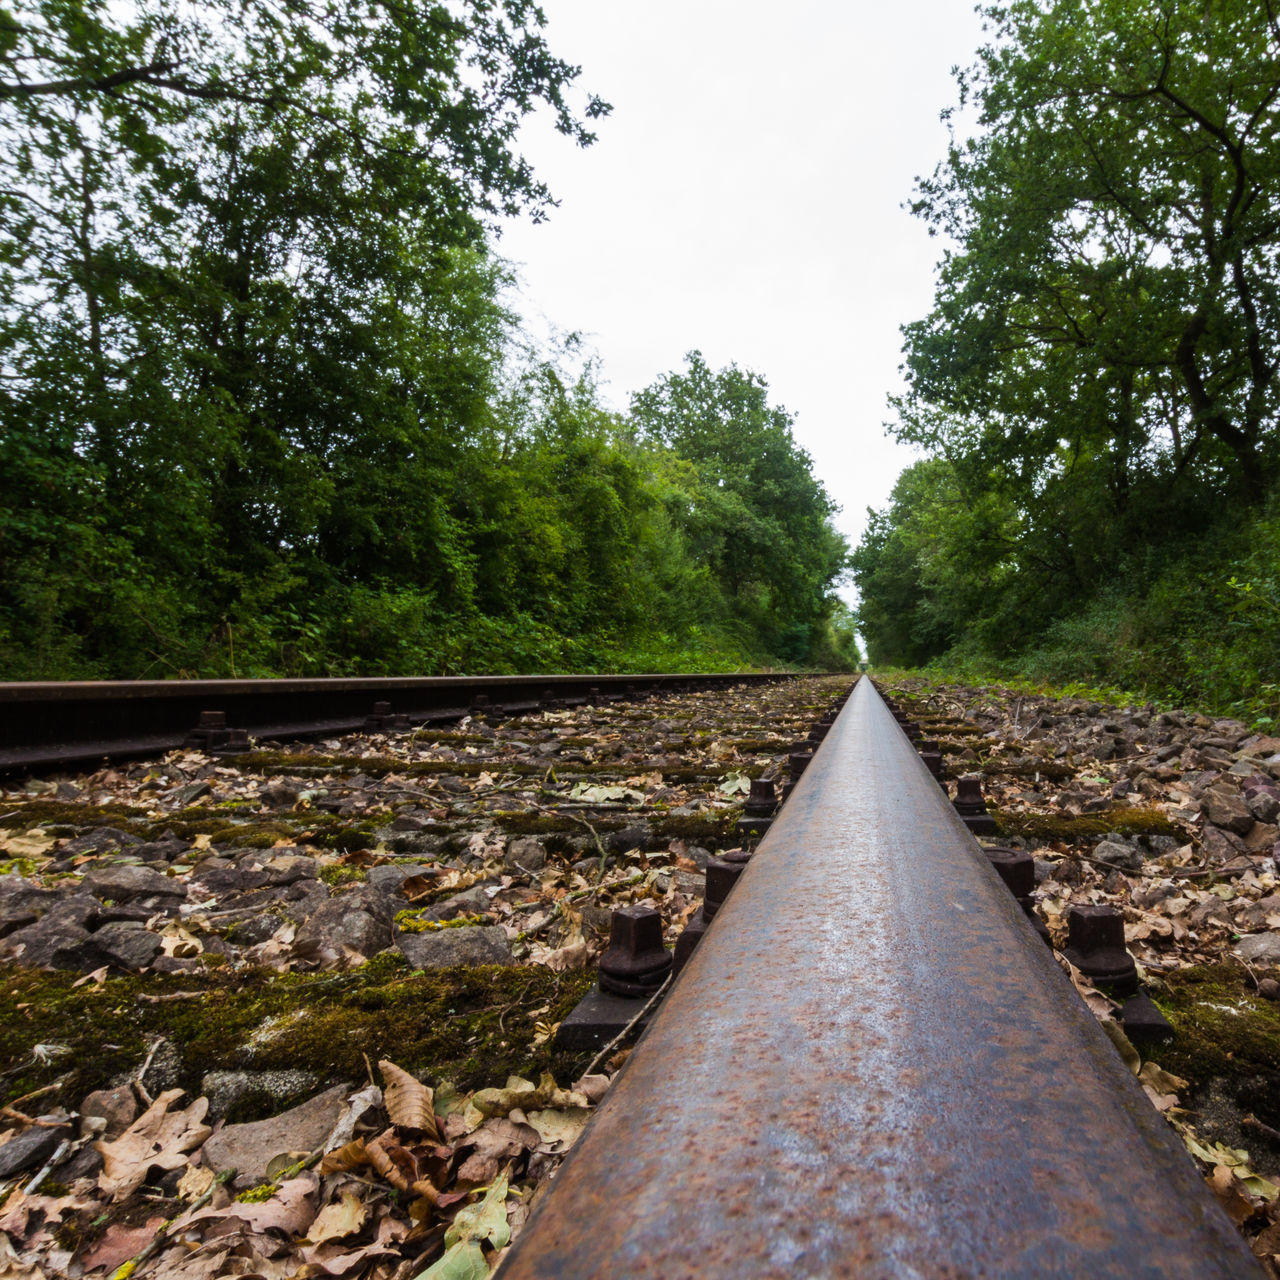 rail transportation, tree, railroad track, plant, track, direction, sky, the way forward, transportation, diminishing perspective, nature, no people, day, metal, growth, clear sky, vanishing point, land, outdoors, beauty in nature, gravel, surface level, long